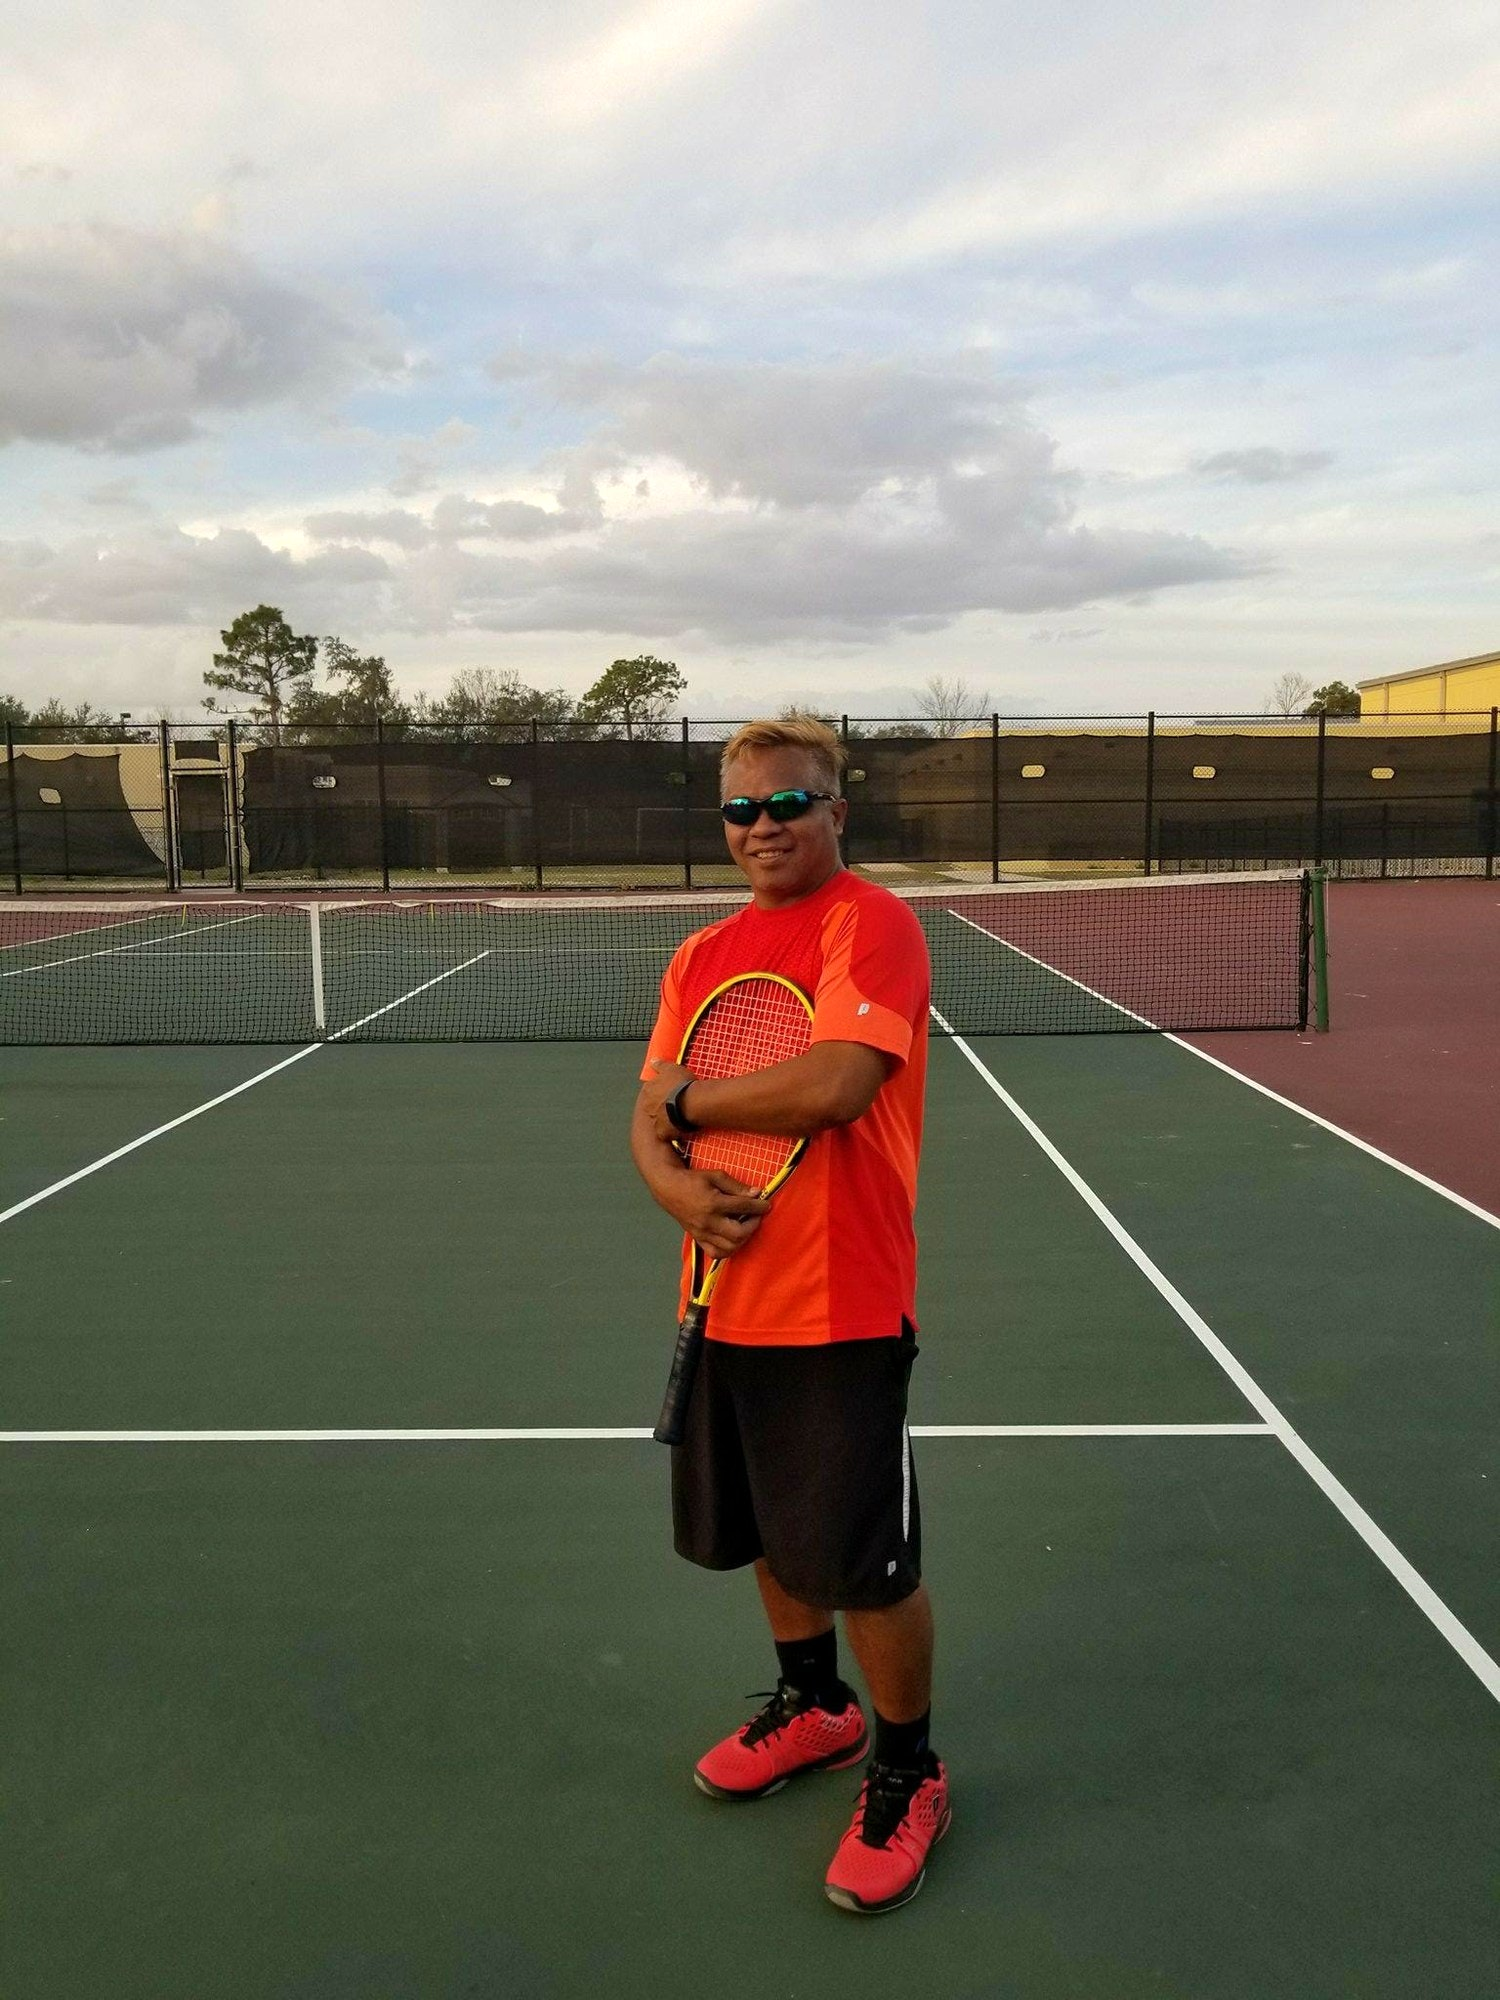 Ethan A. teaches tennis lessons in Casselberry, FL